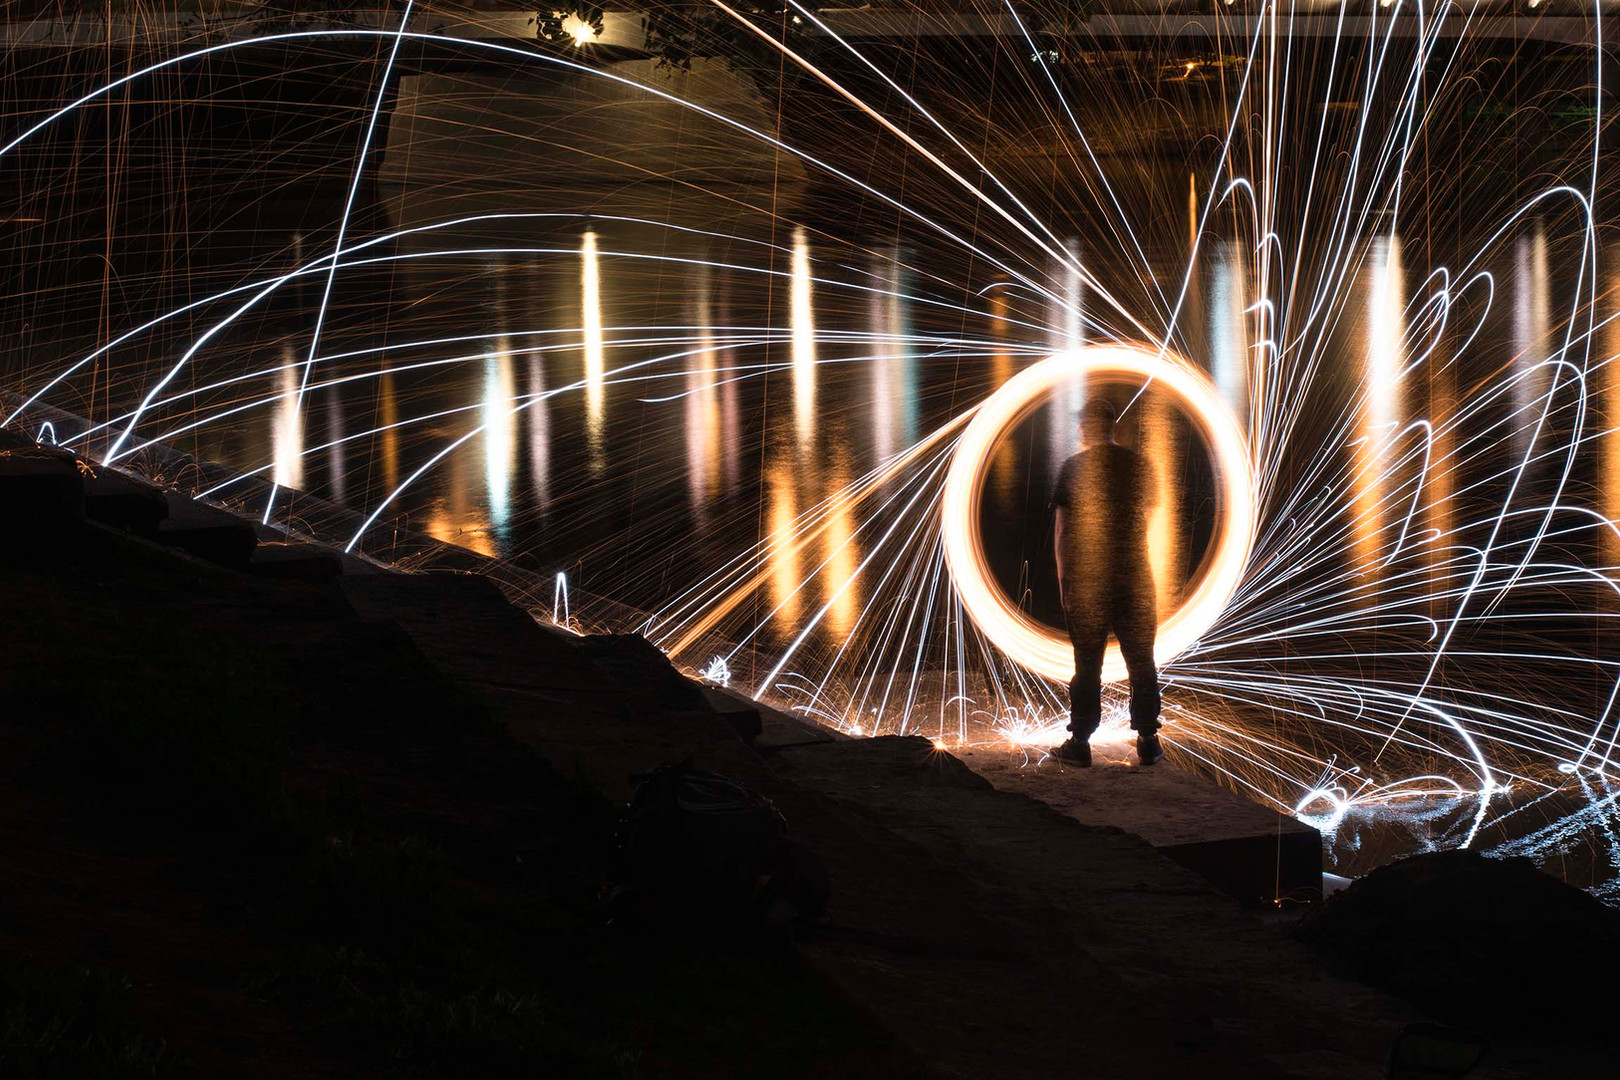 Steel Wool Photography in Winnipeg, Canada